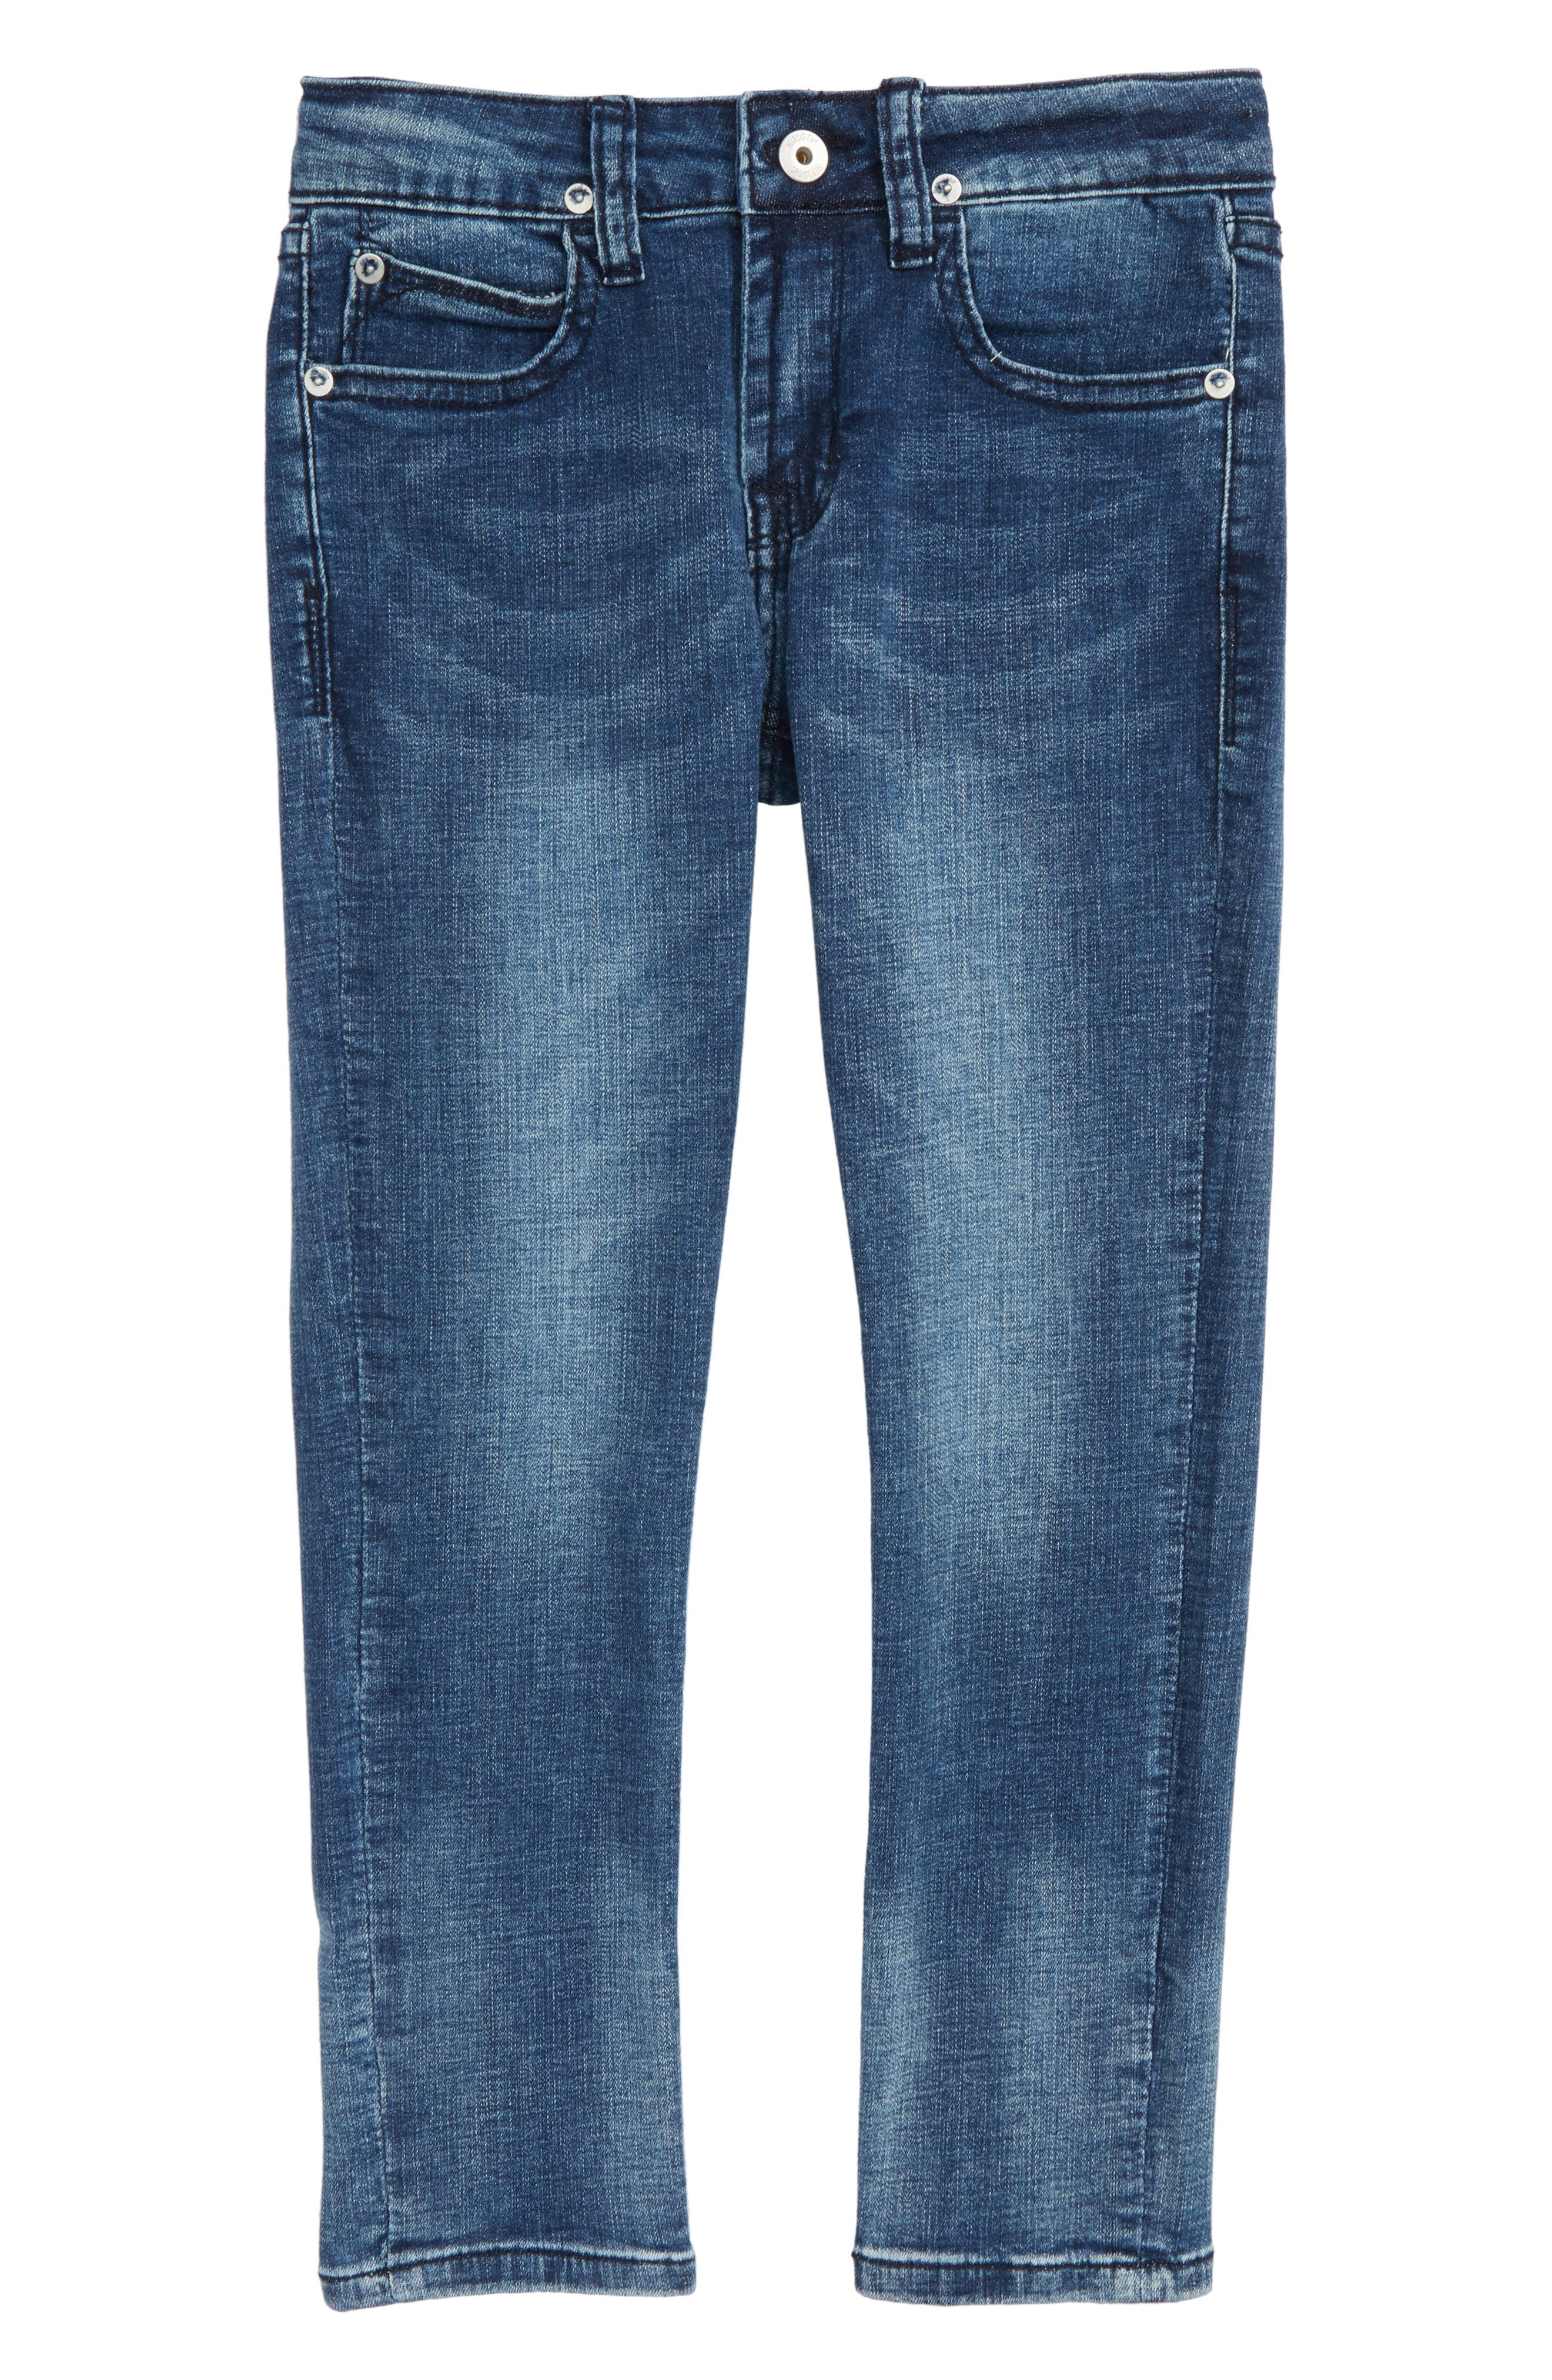 Jagger Slim Fit Straight Leg Jeans,                         Main,                         color, 468